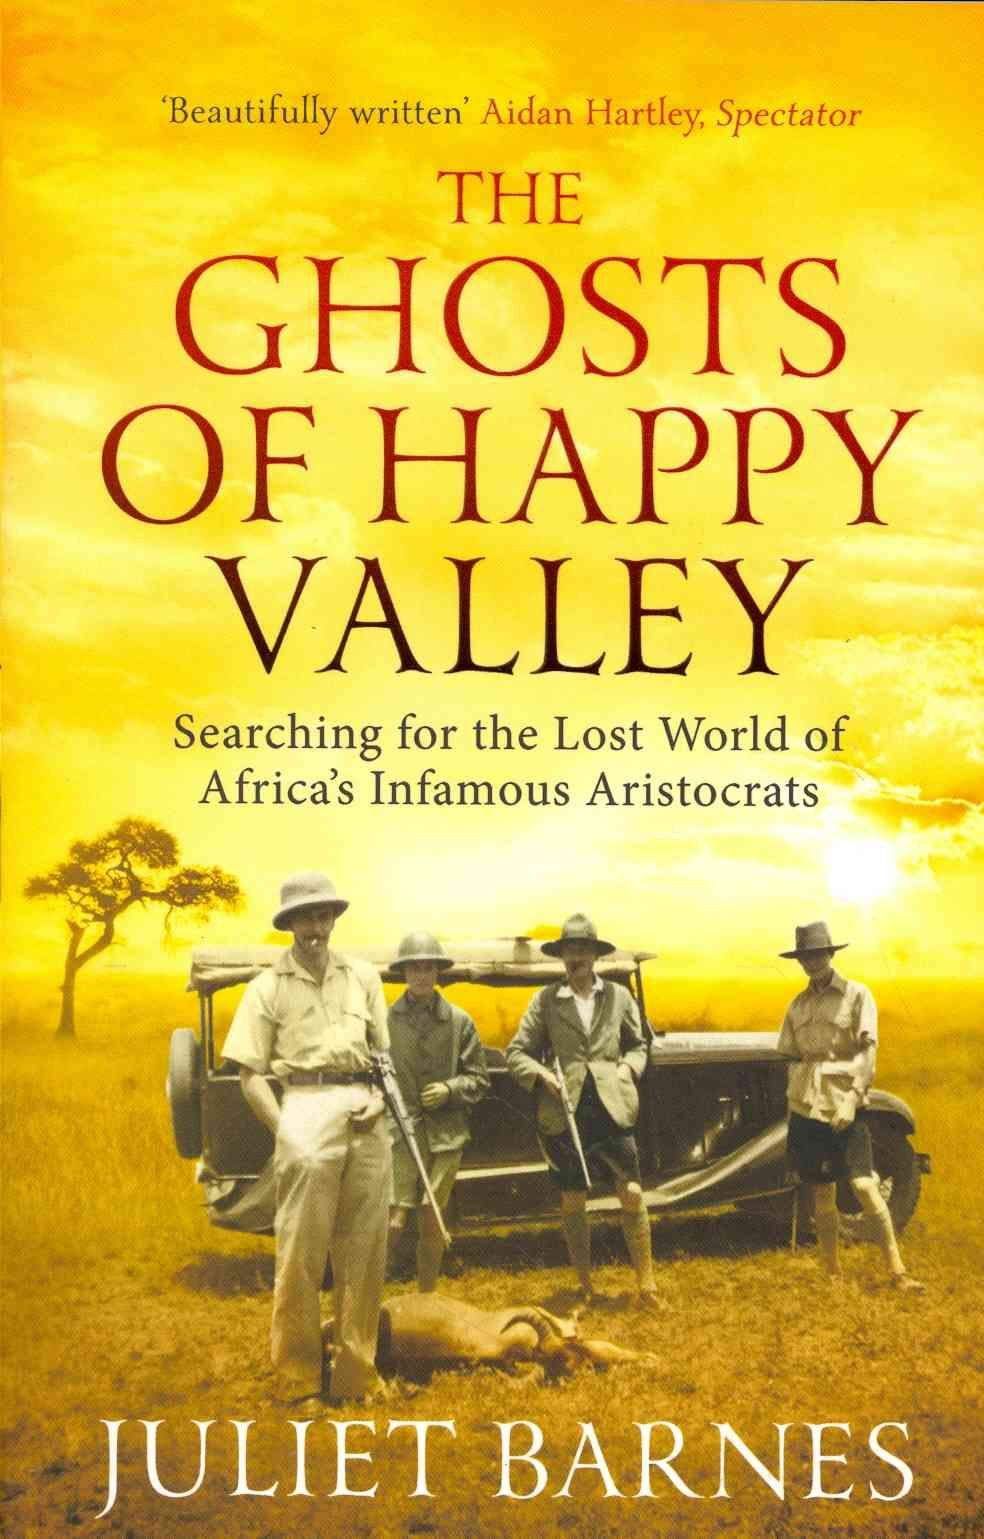 The Ghosts of Happy Valley Searching for the Lost World